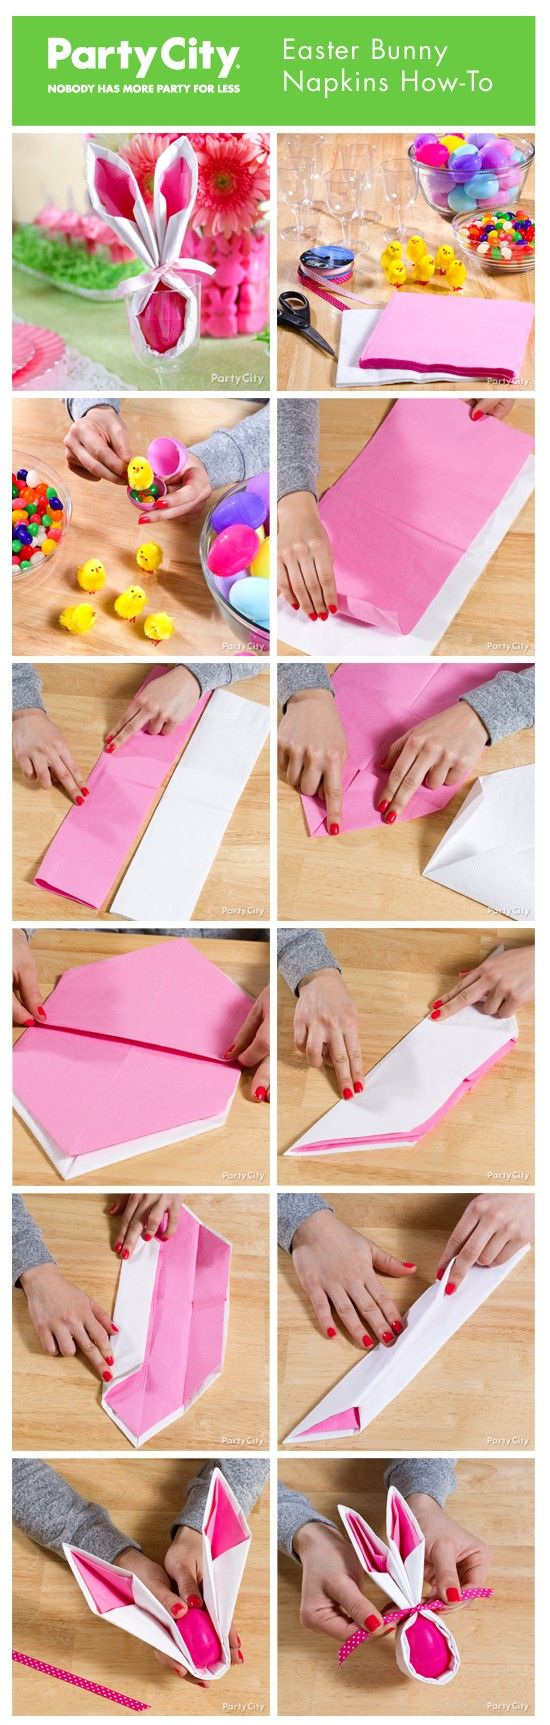 Easter Bunny Napkin How-To ~ make adorable pink and white Easter bunny napkins that double as candy favors... Tutorial with step by step how-to photos.